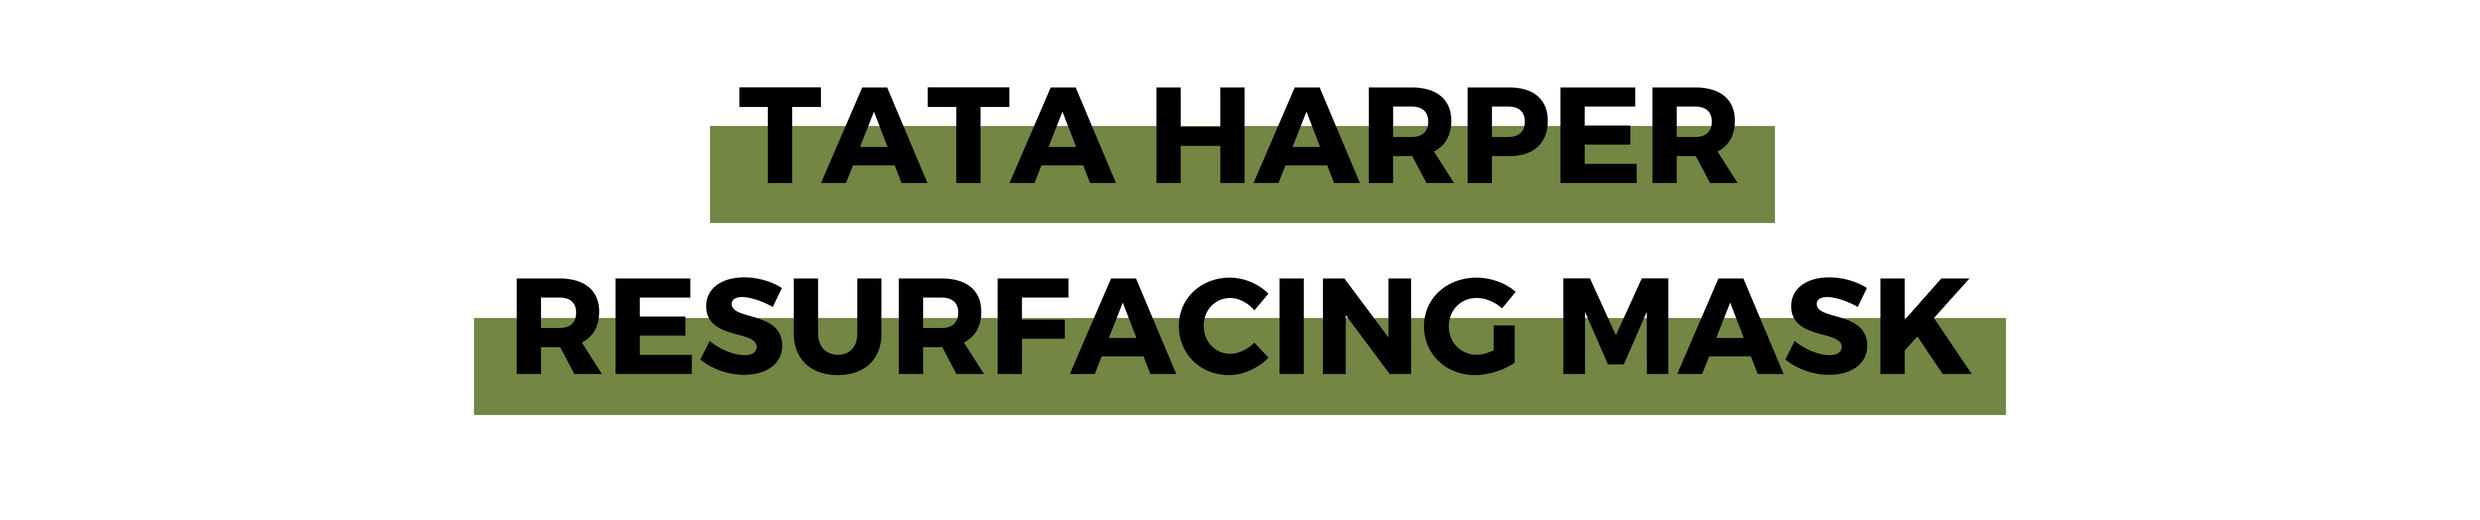 TATA HARPER RESURFACING MASK.png